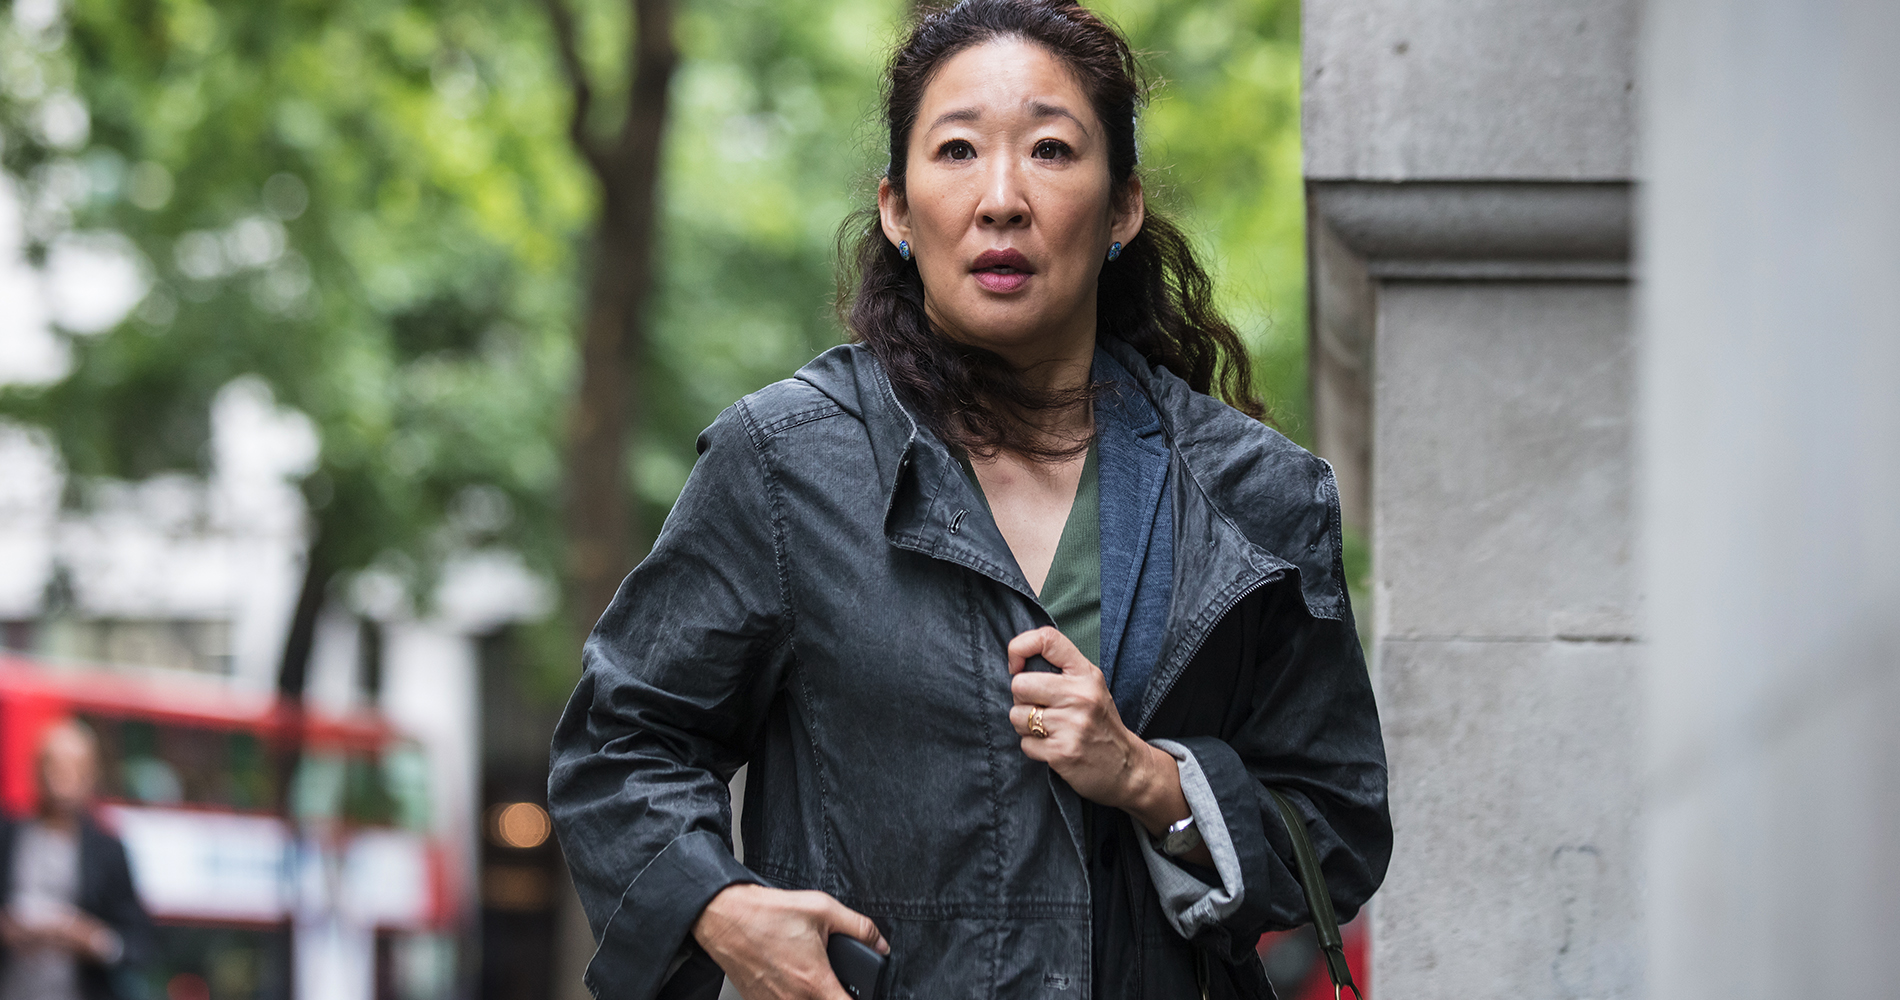 Where to watch Killing Eve season 1 online, free, BBC America, sandra oh, Jodie Comer, at knife, confrontation, sandra oh confused